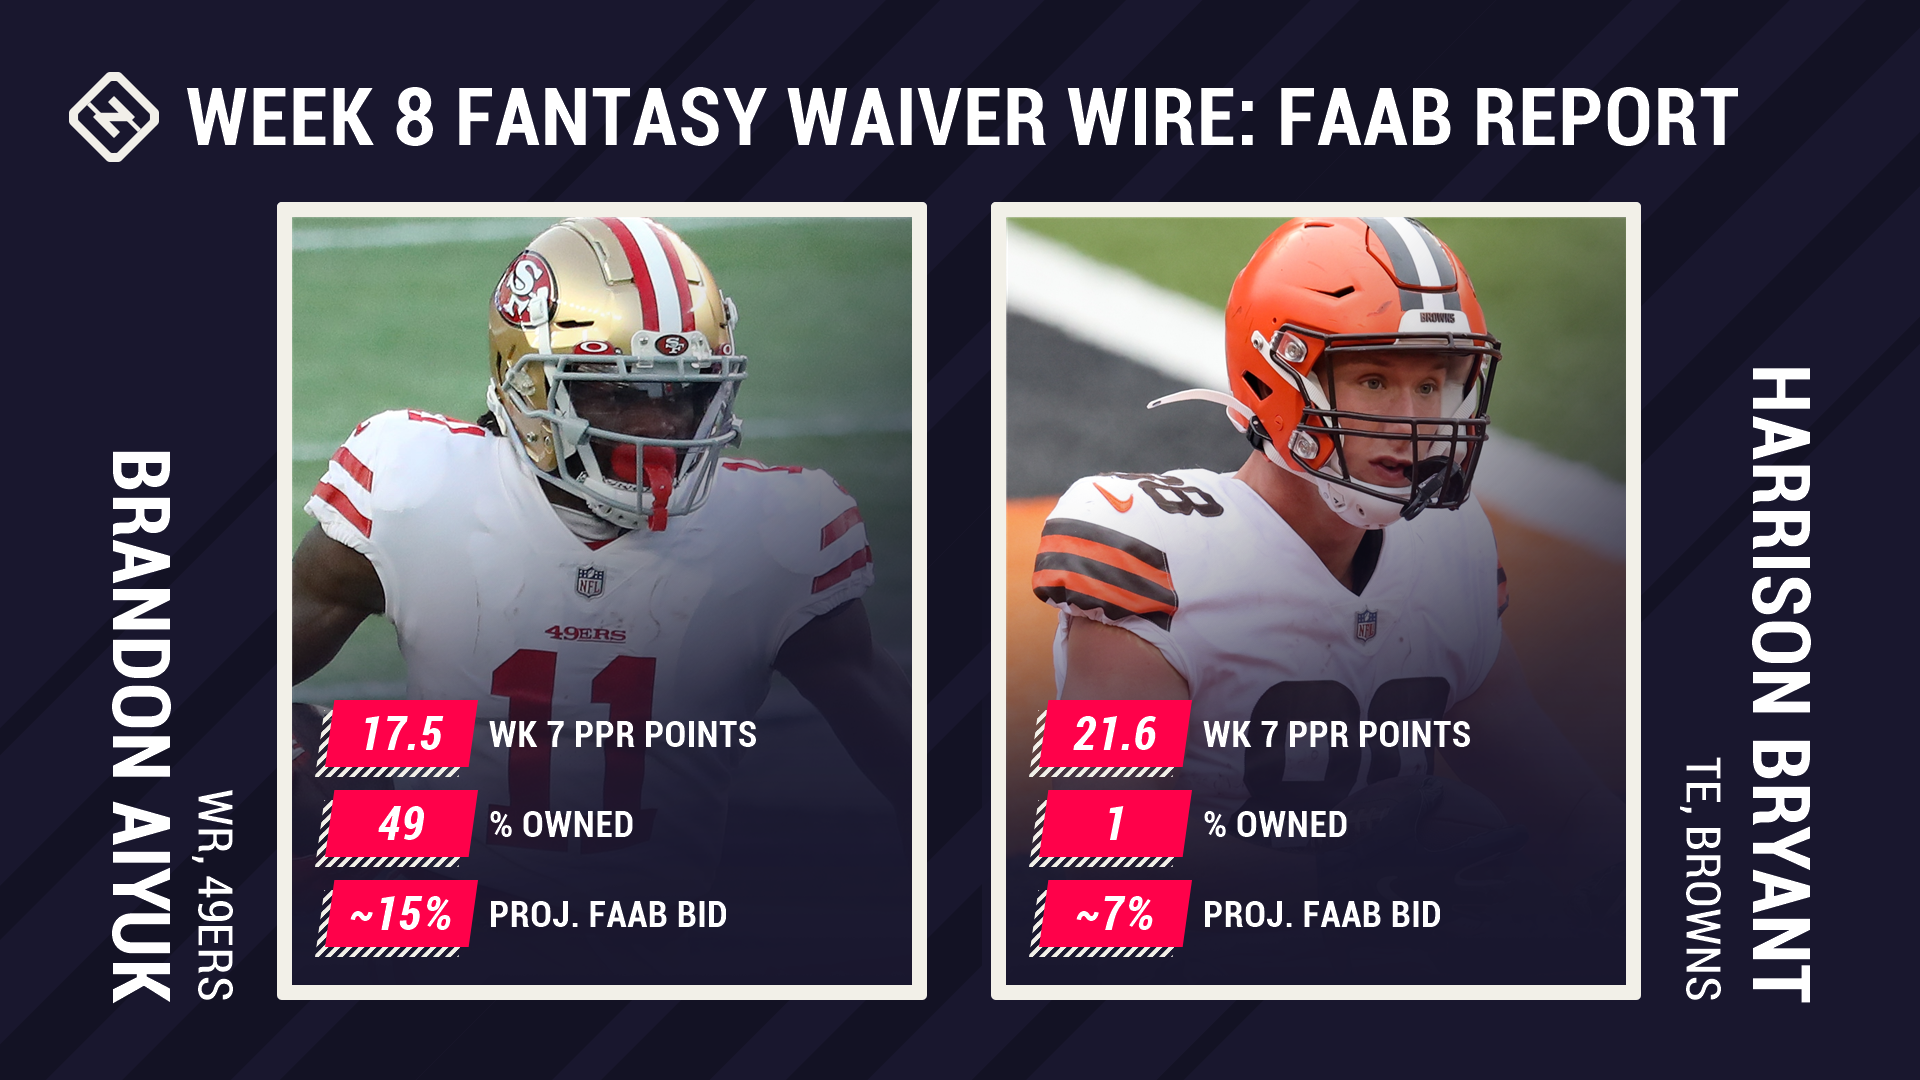 Fantasy Waiver Wire: FAAB Report for Week 8 pickups, free agents 1